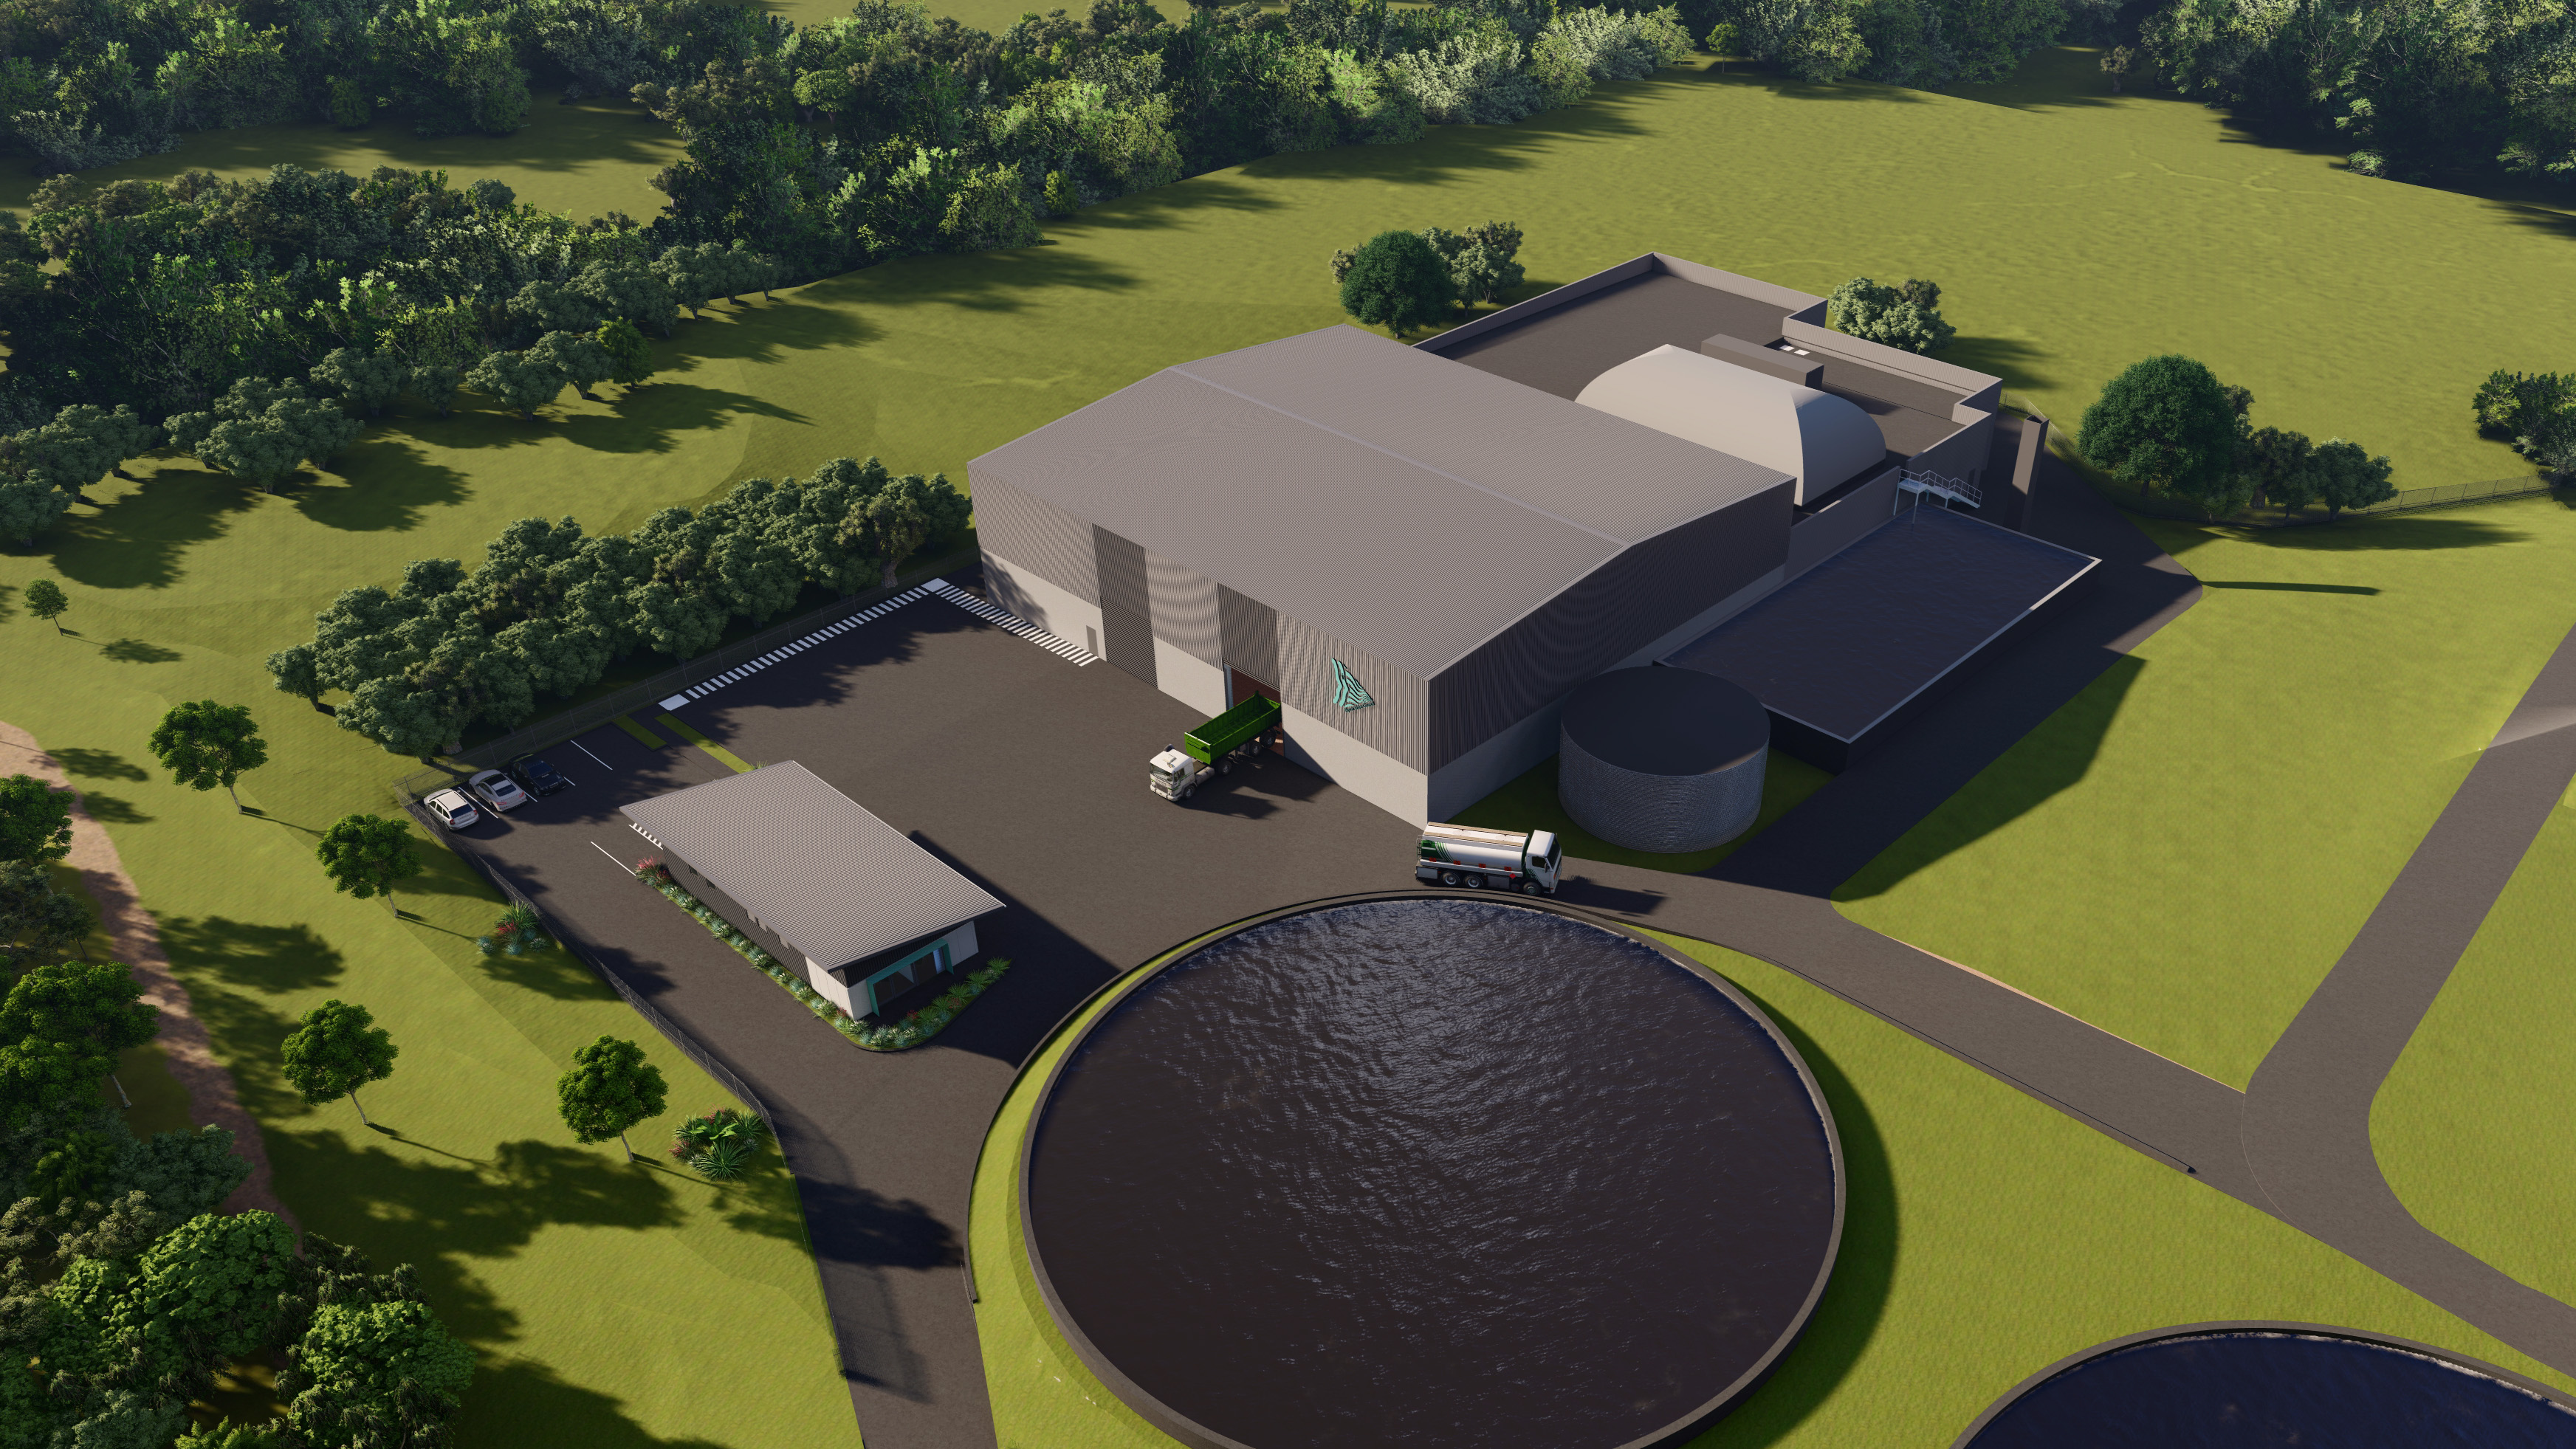 Artist's impression of aerial view of bioenergy facility